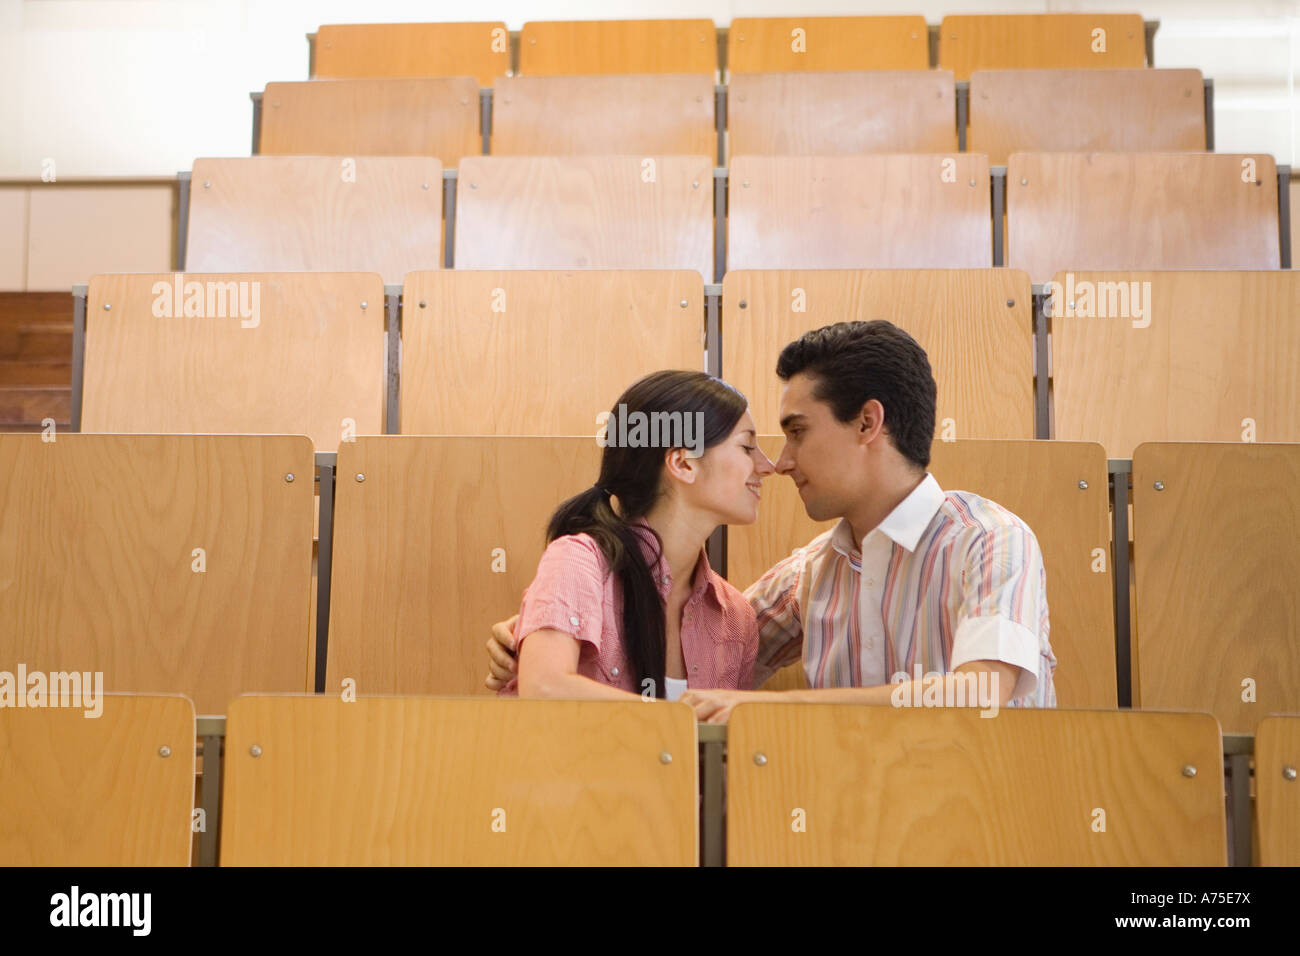 Students kissing in empty classroom Stock Photo